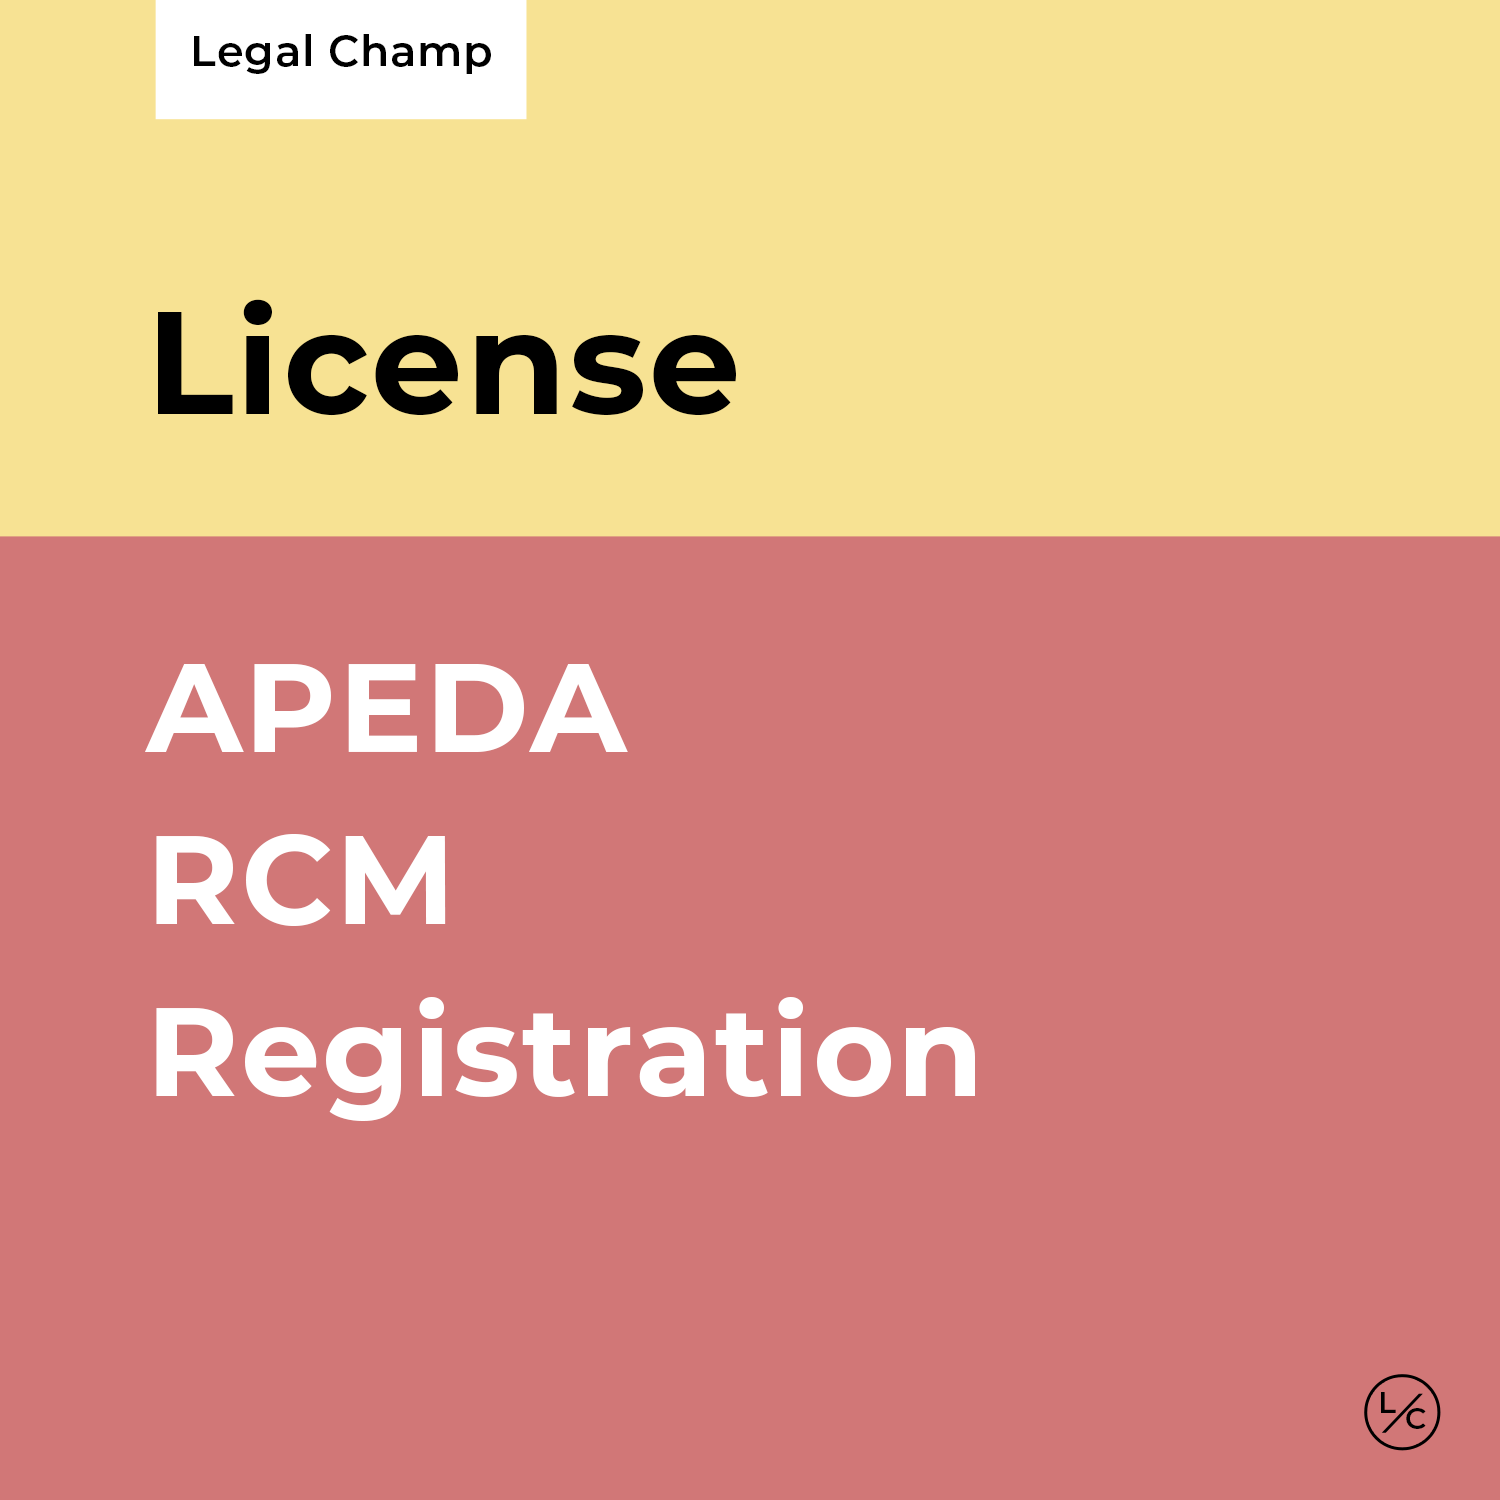 APEDA-RCMC Registration